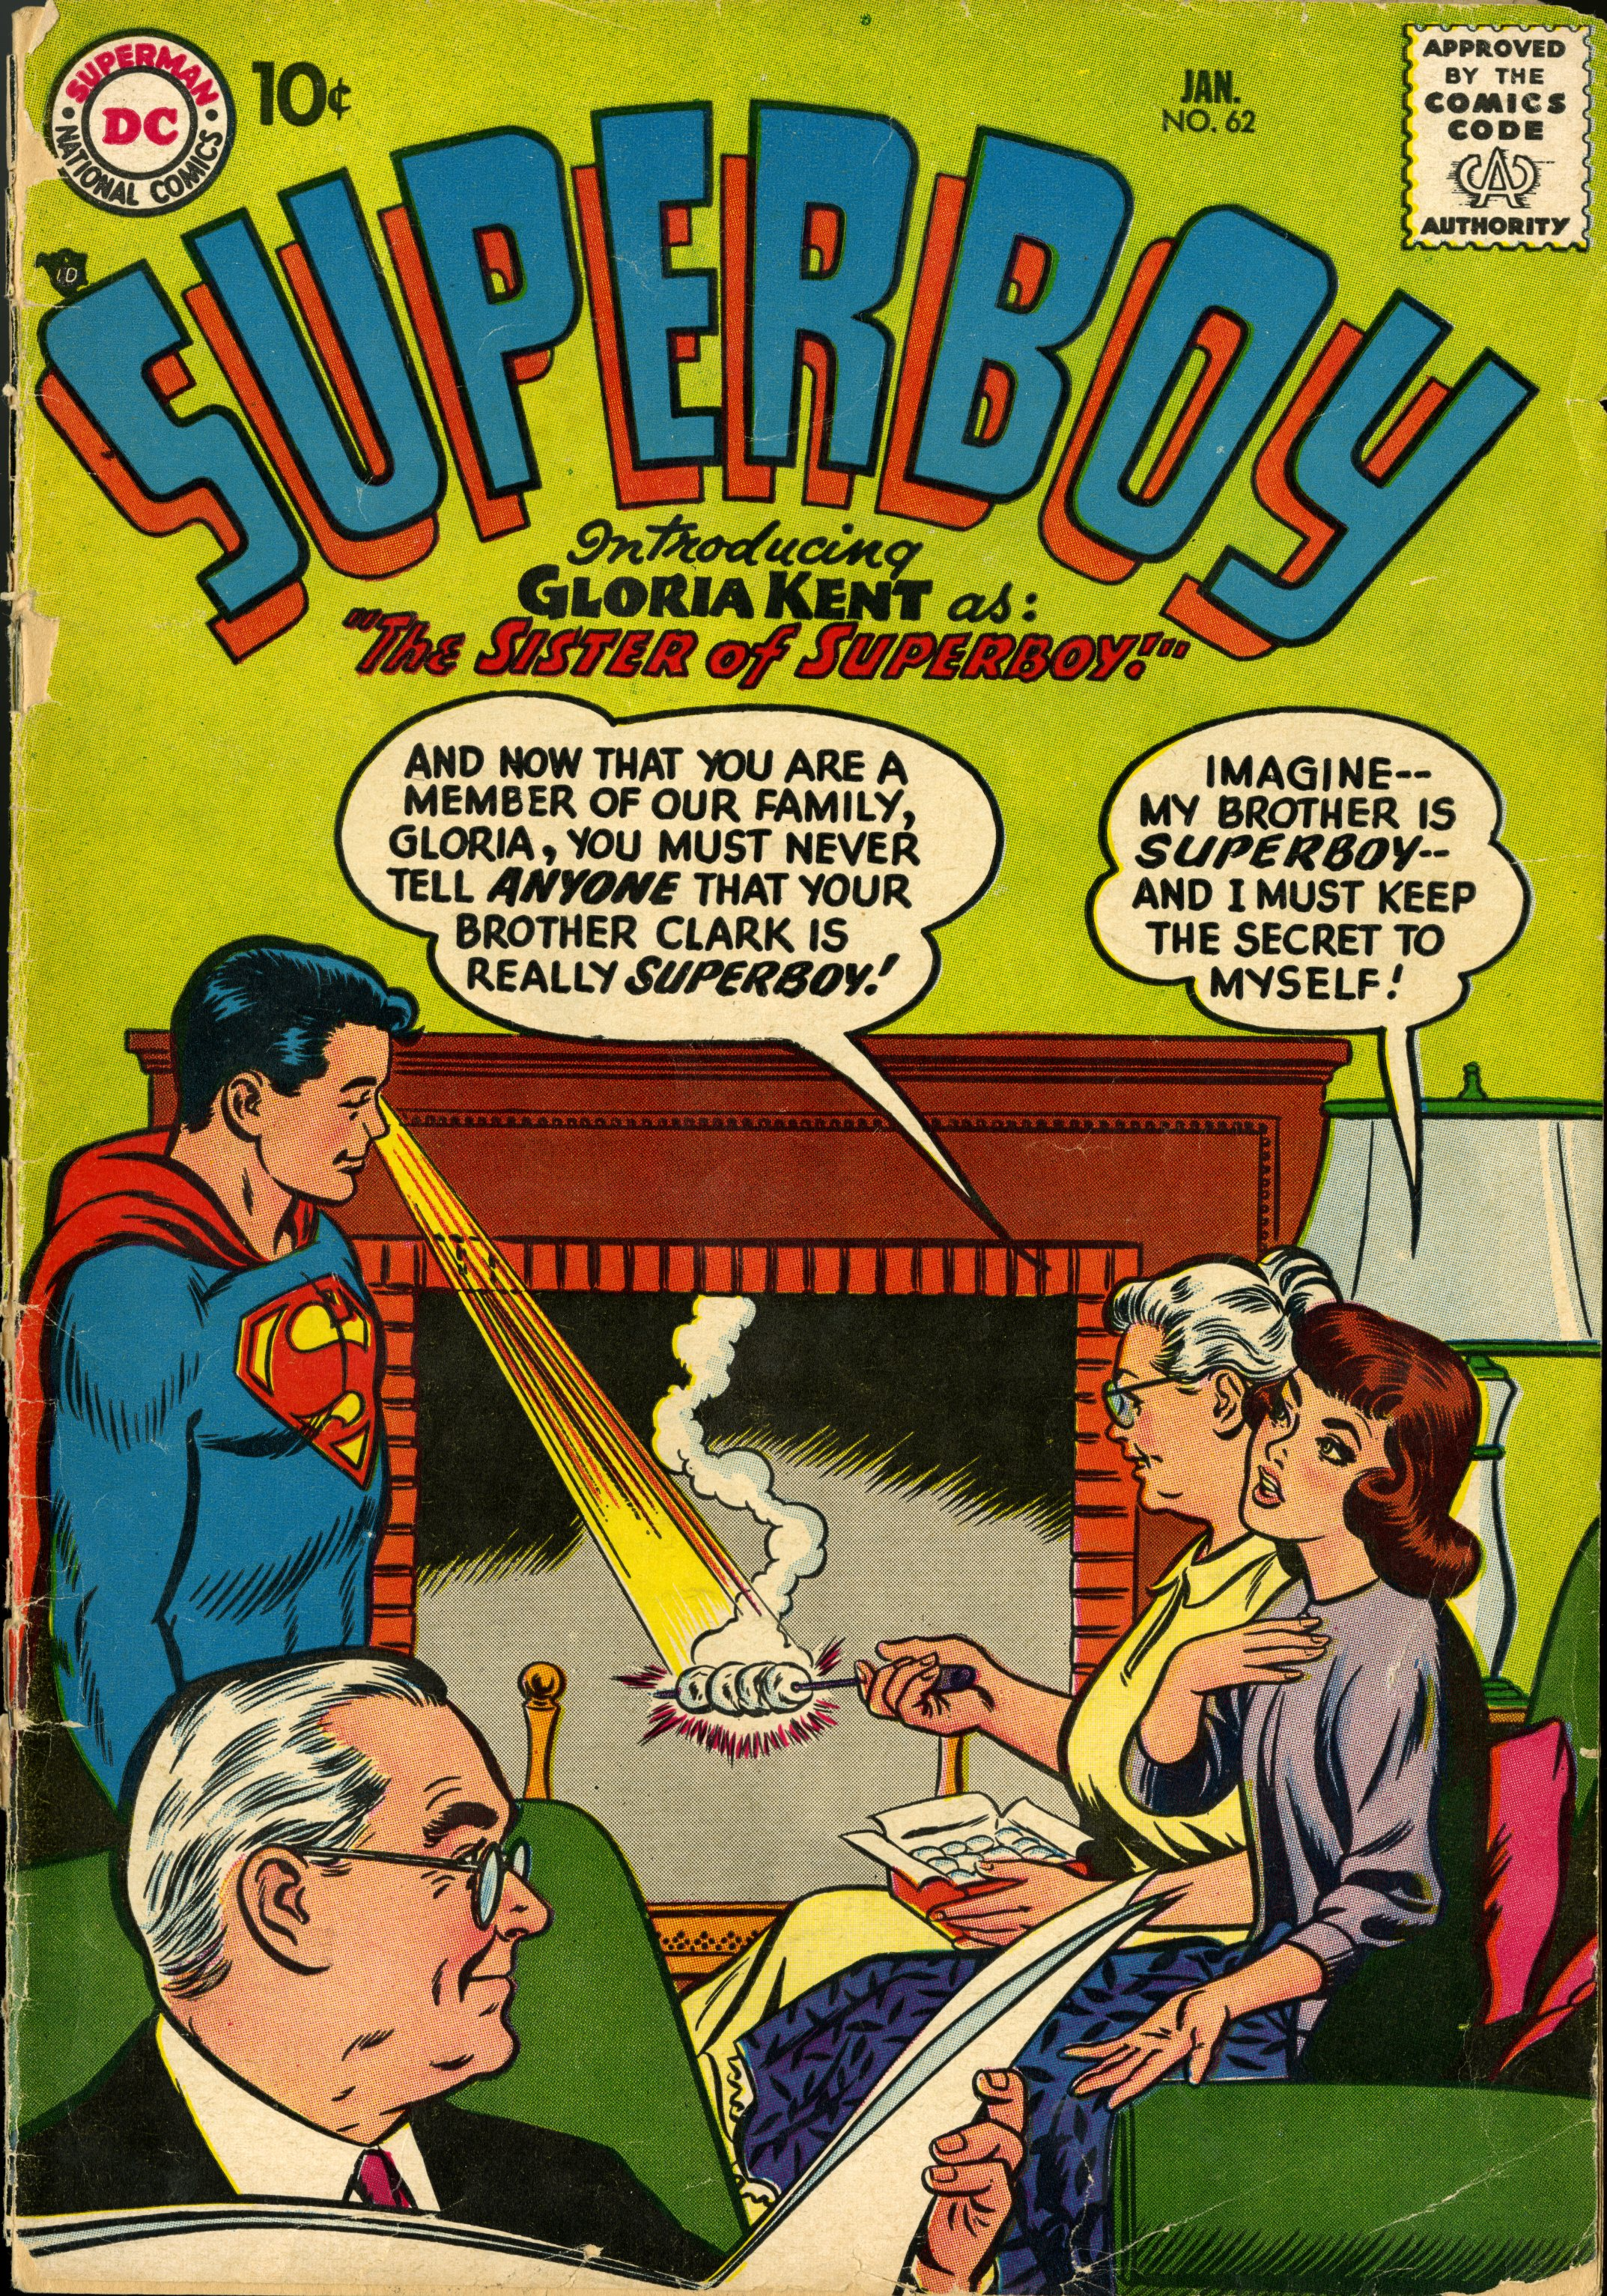 Superboy no 62 January 1958007.jpg